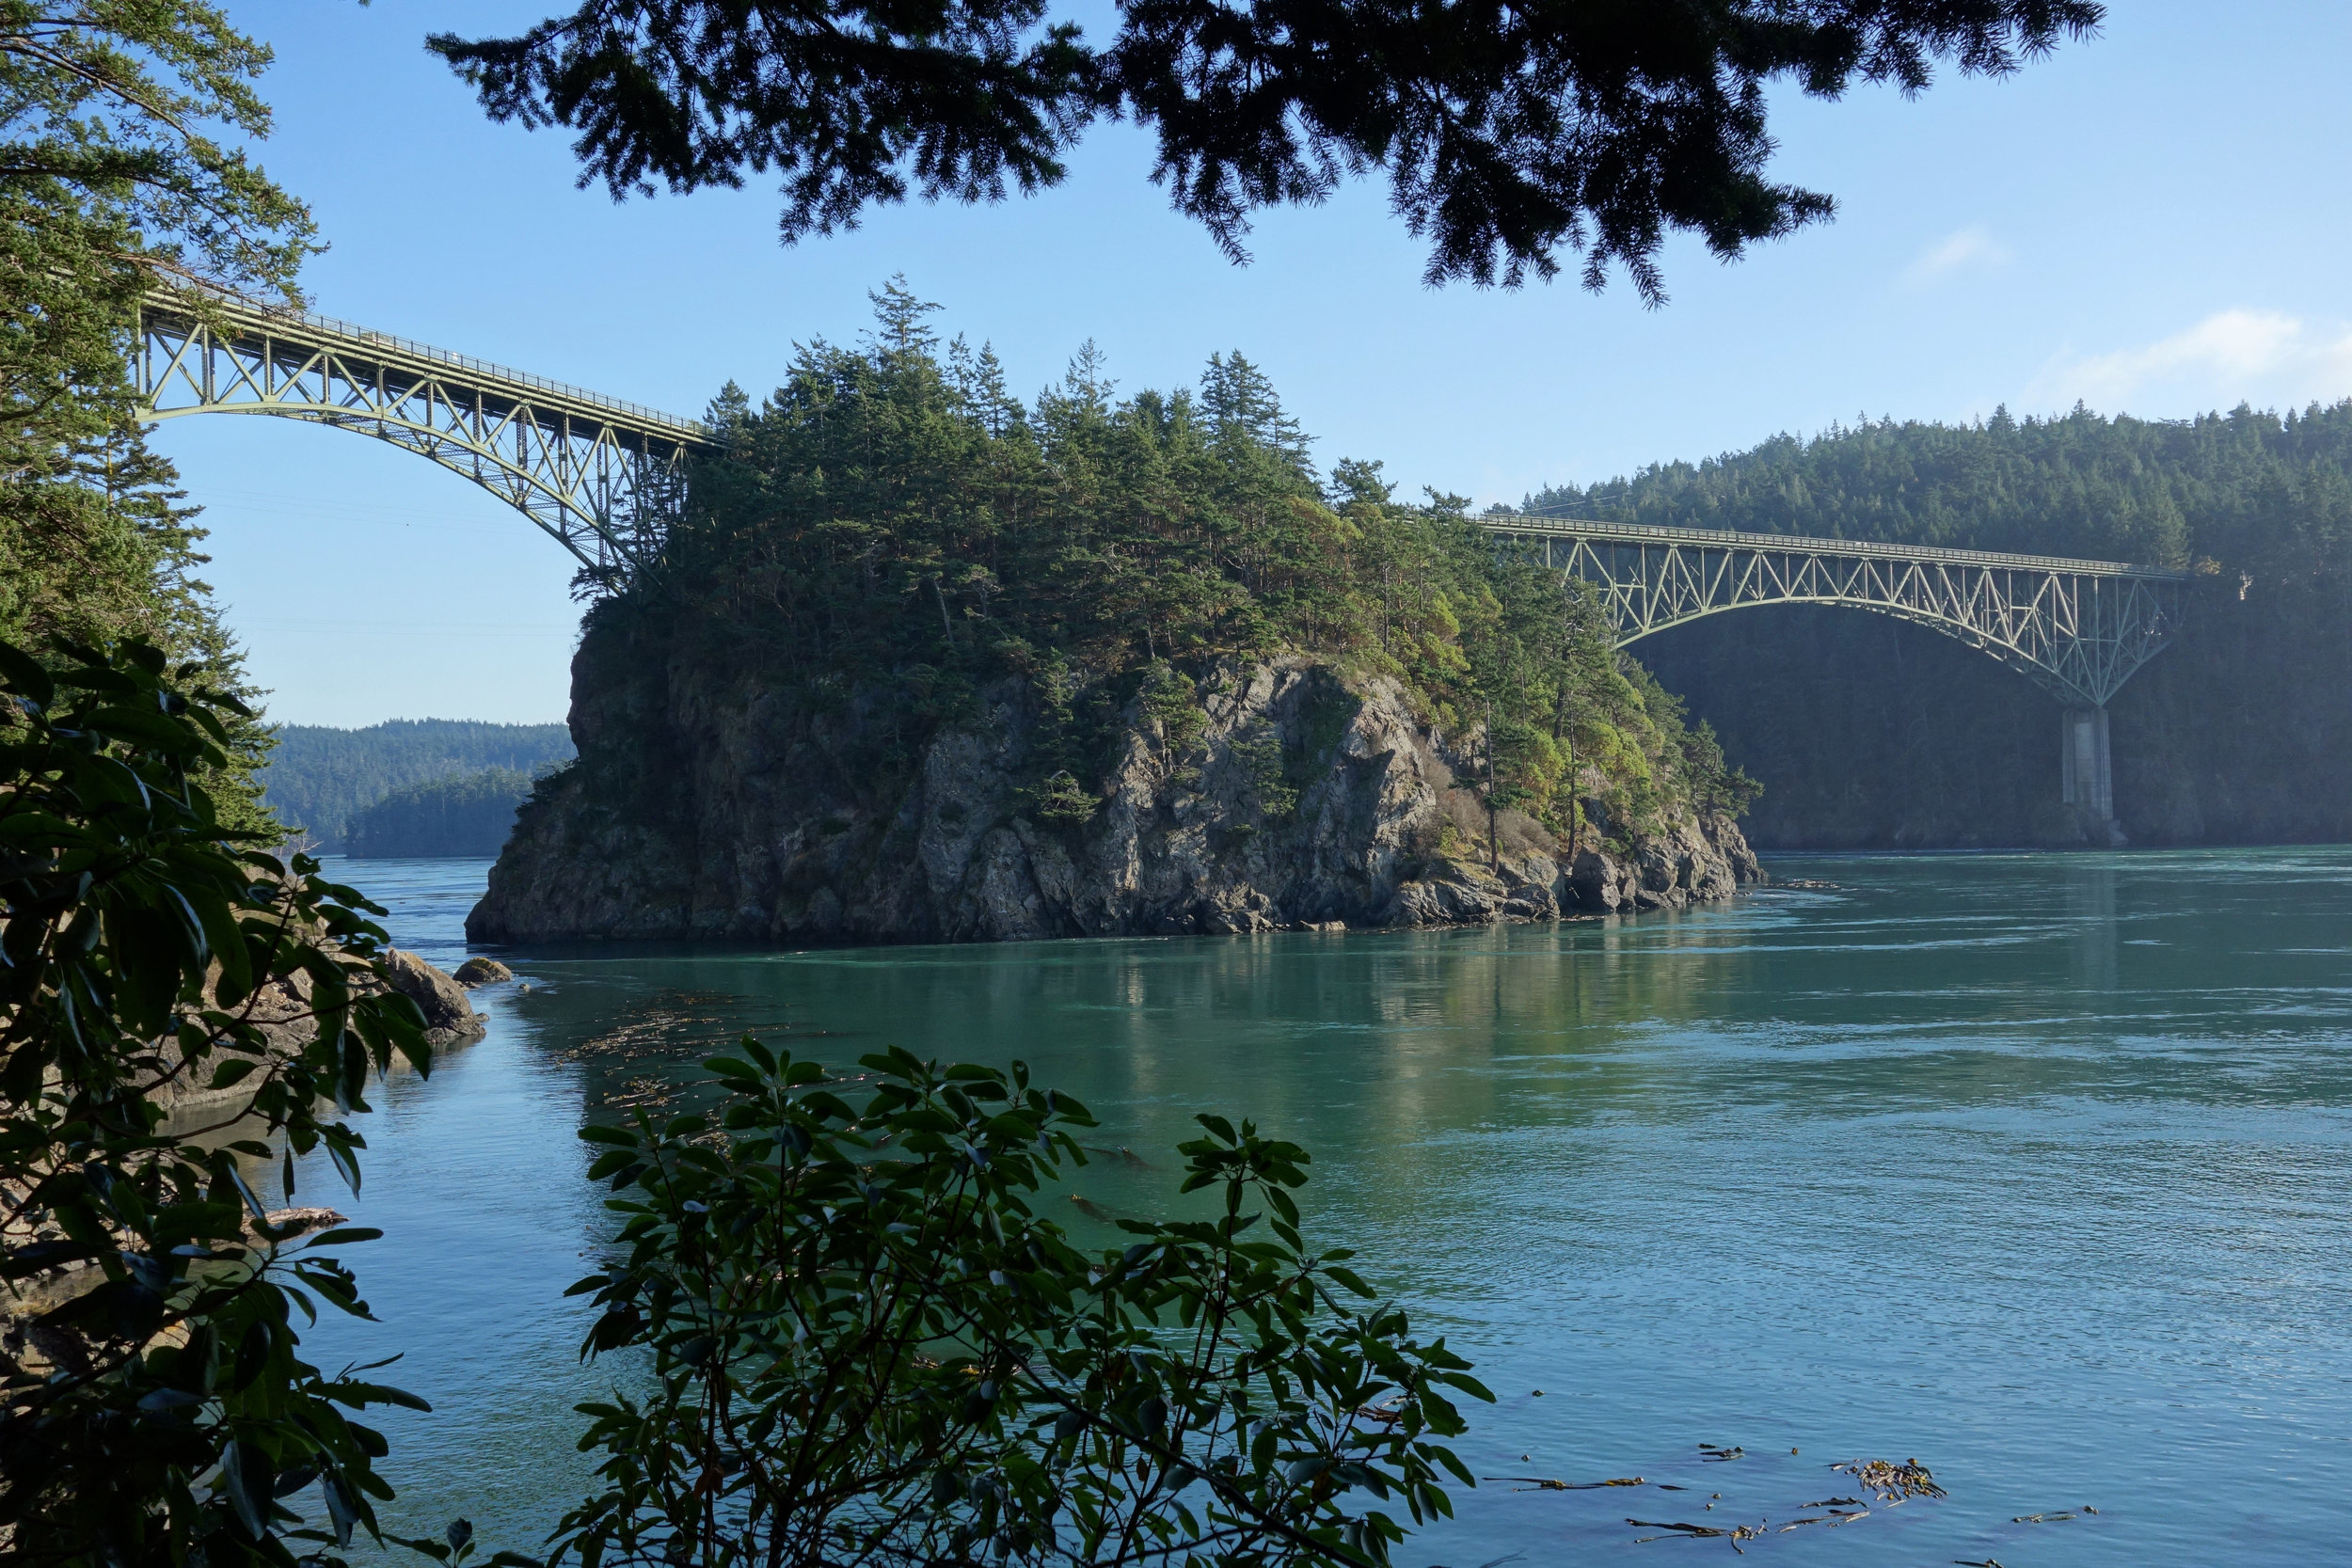 We're local - Serving Skagit, Island, and Whatcom Counties